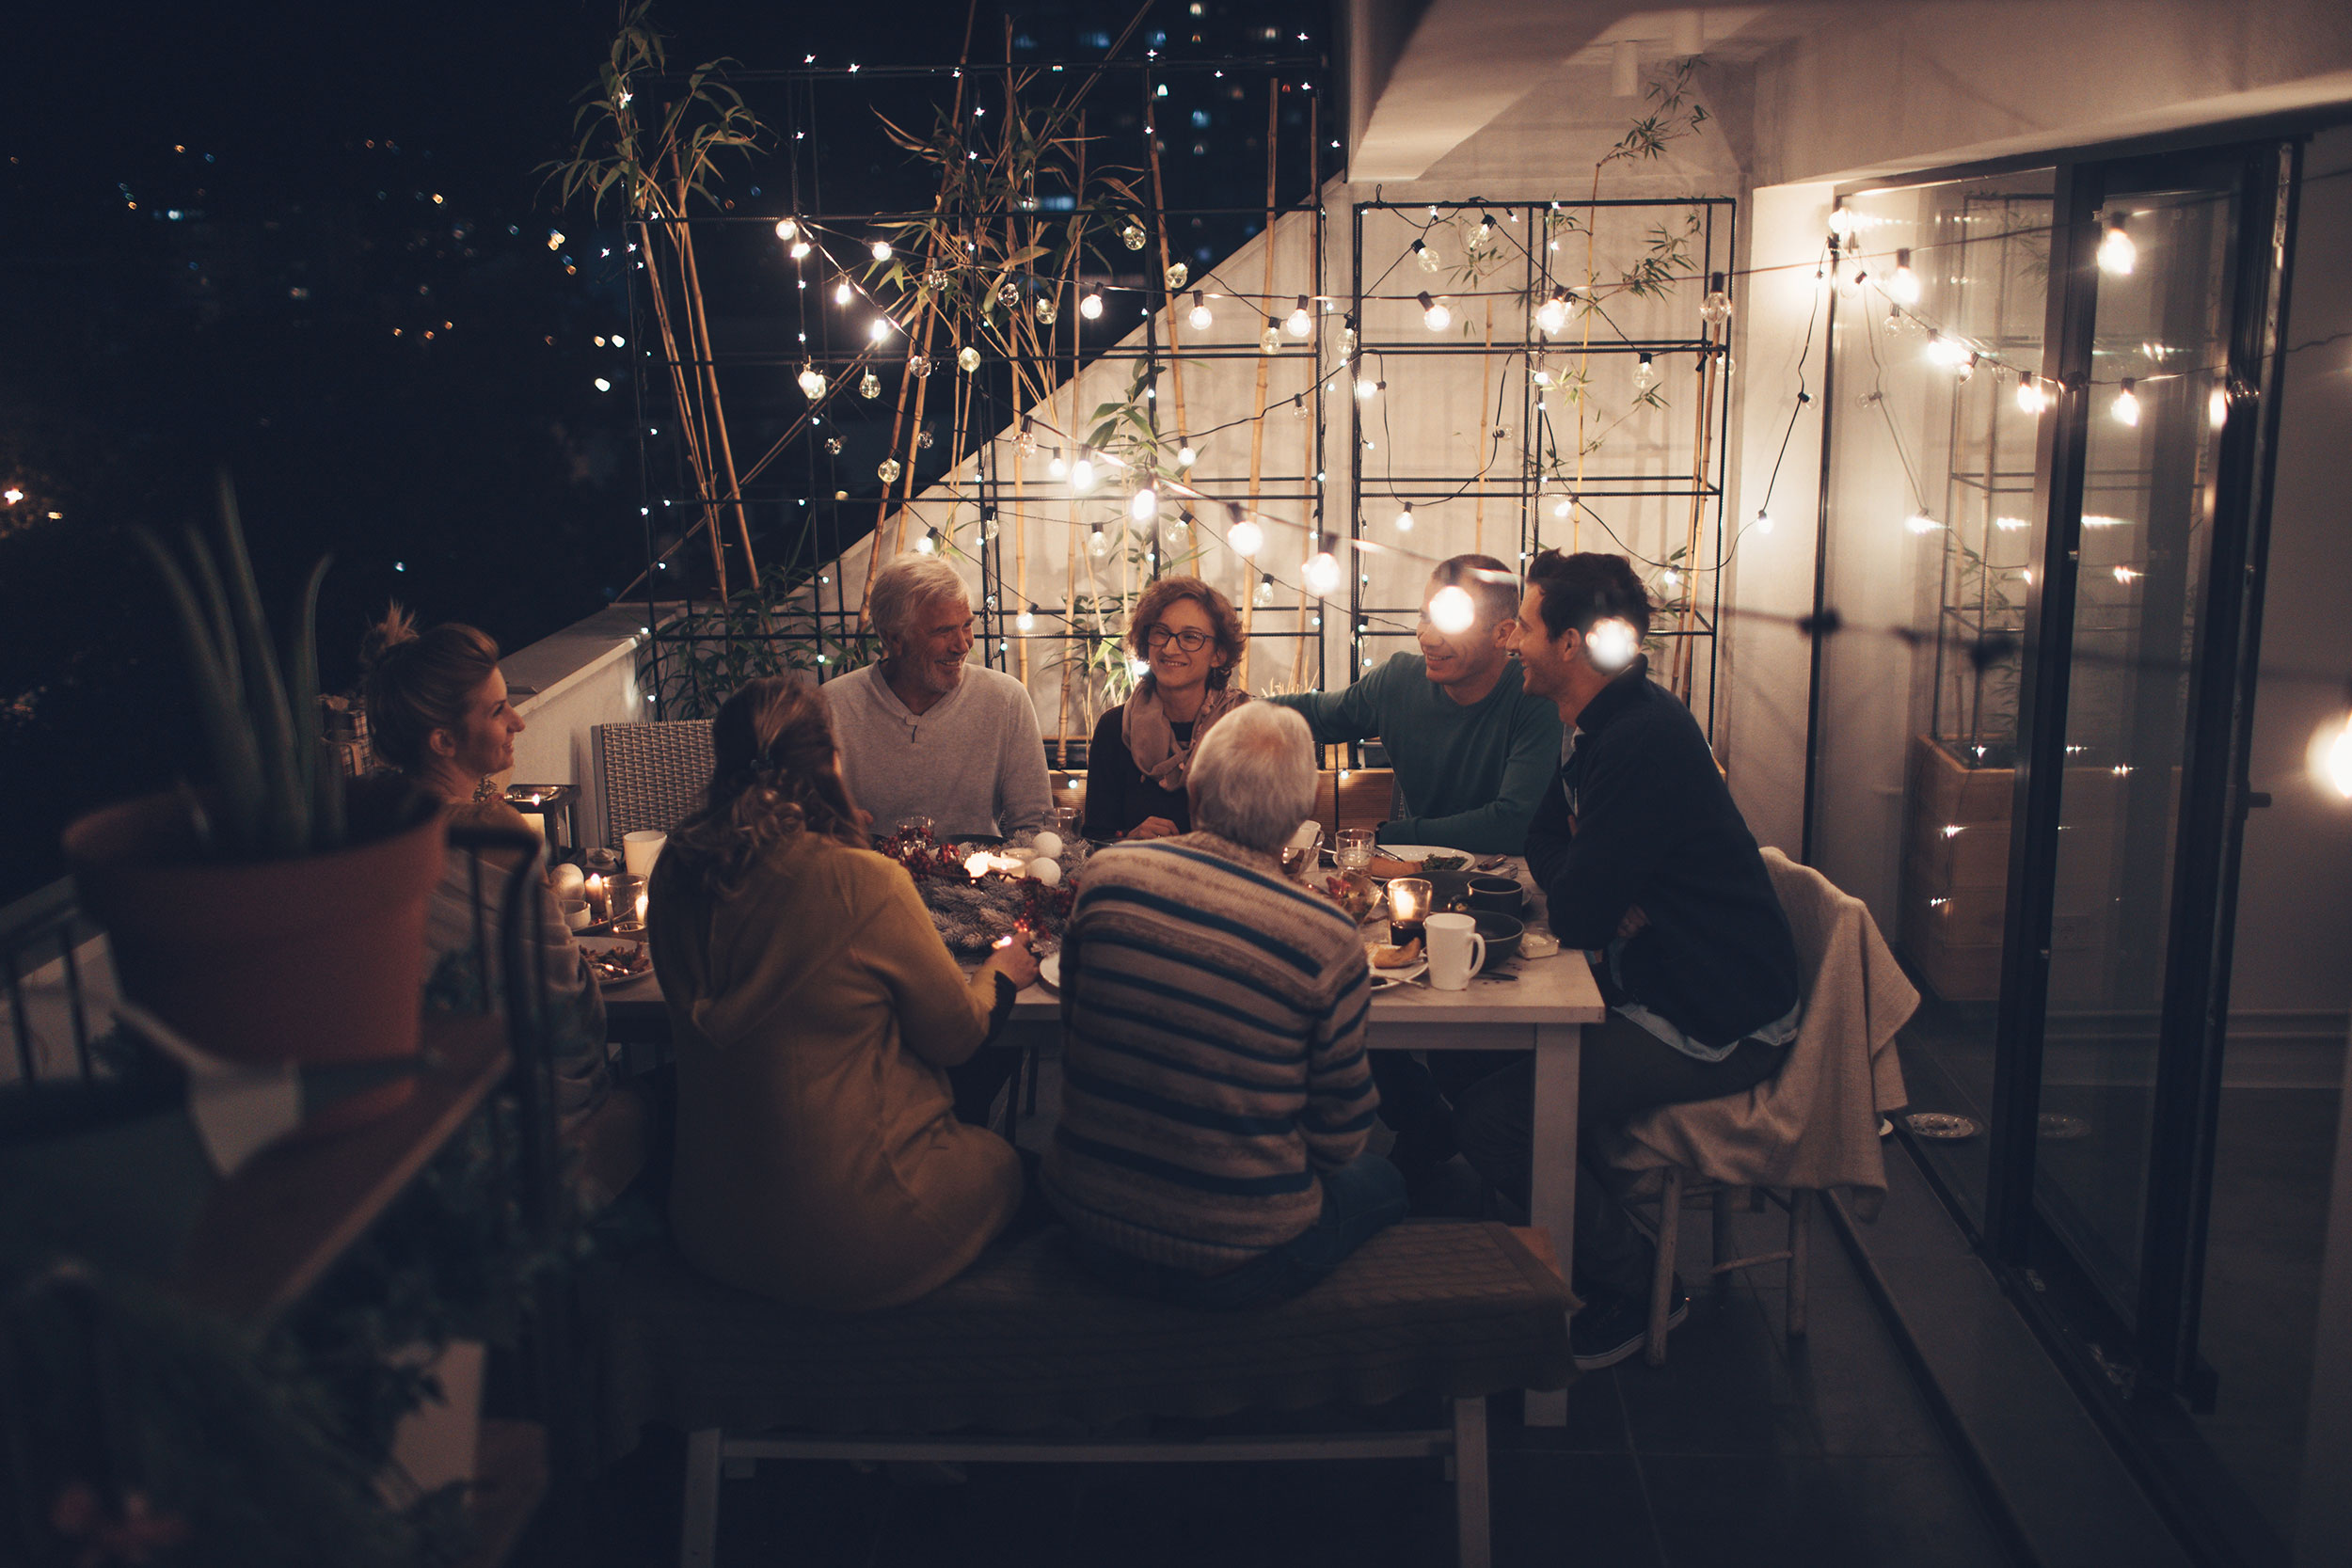 Photo of a family around the dinner table for Passover, shown laughing and enjoying each other's company.